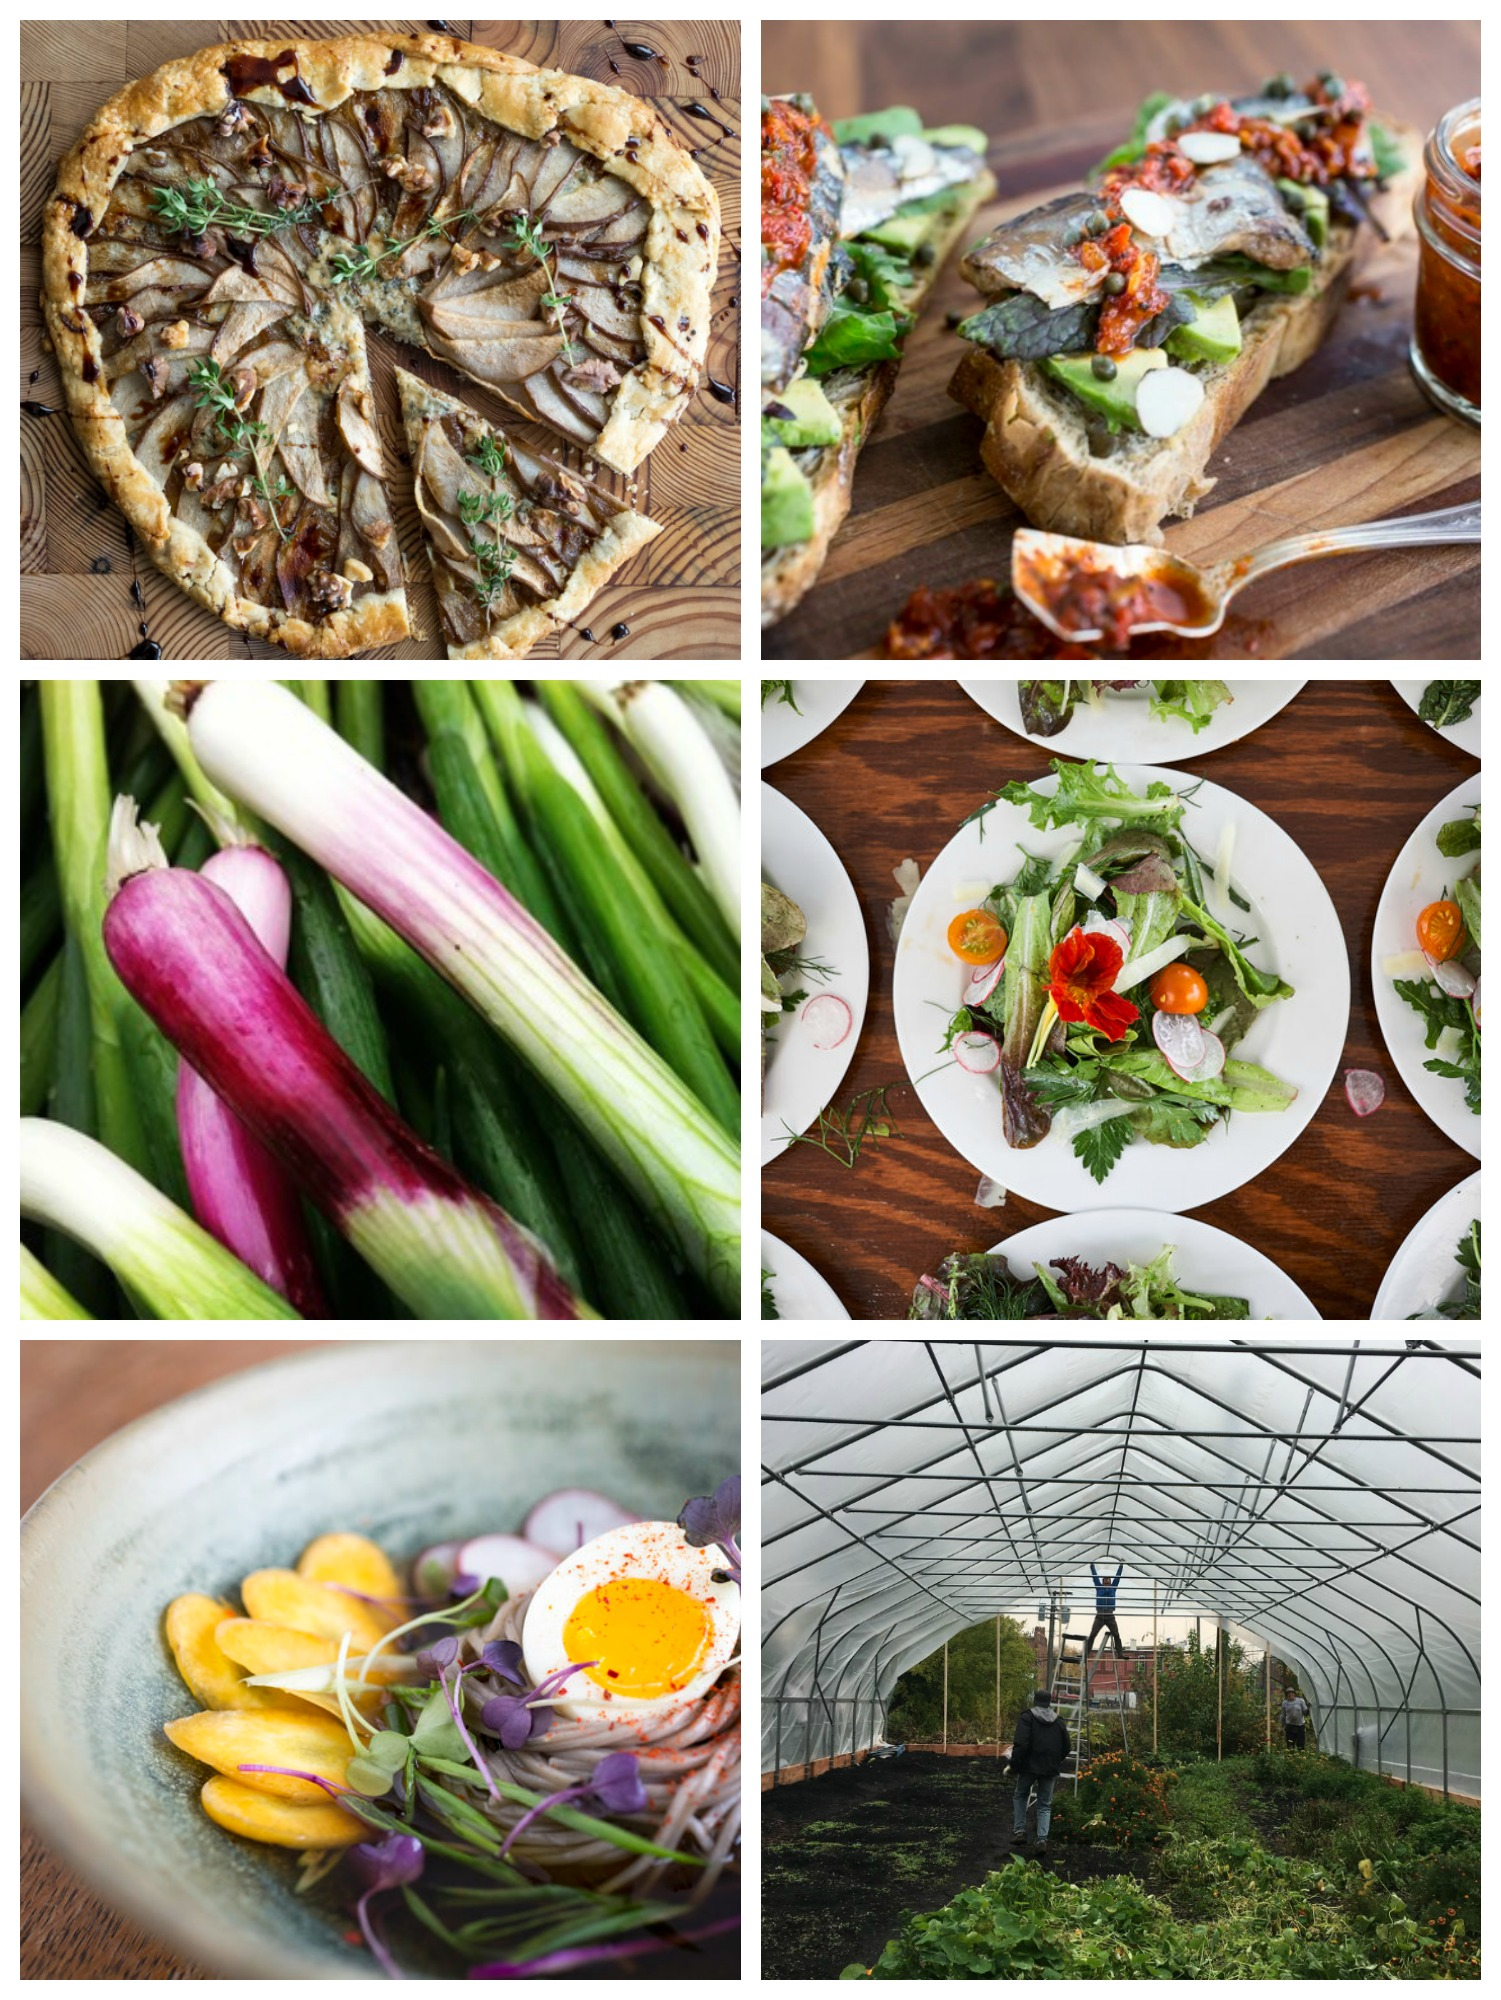 Coriander Kitchen and Farm - corianderkitchenandfarm.comcoriander kitchen and farm is made up of the chef-farmer team of alison heeres and gwen meyer.alison says she is